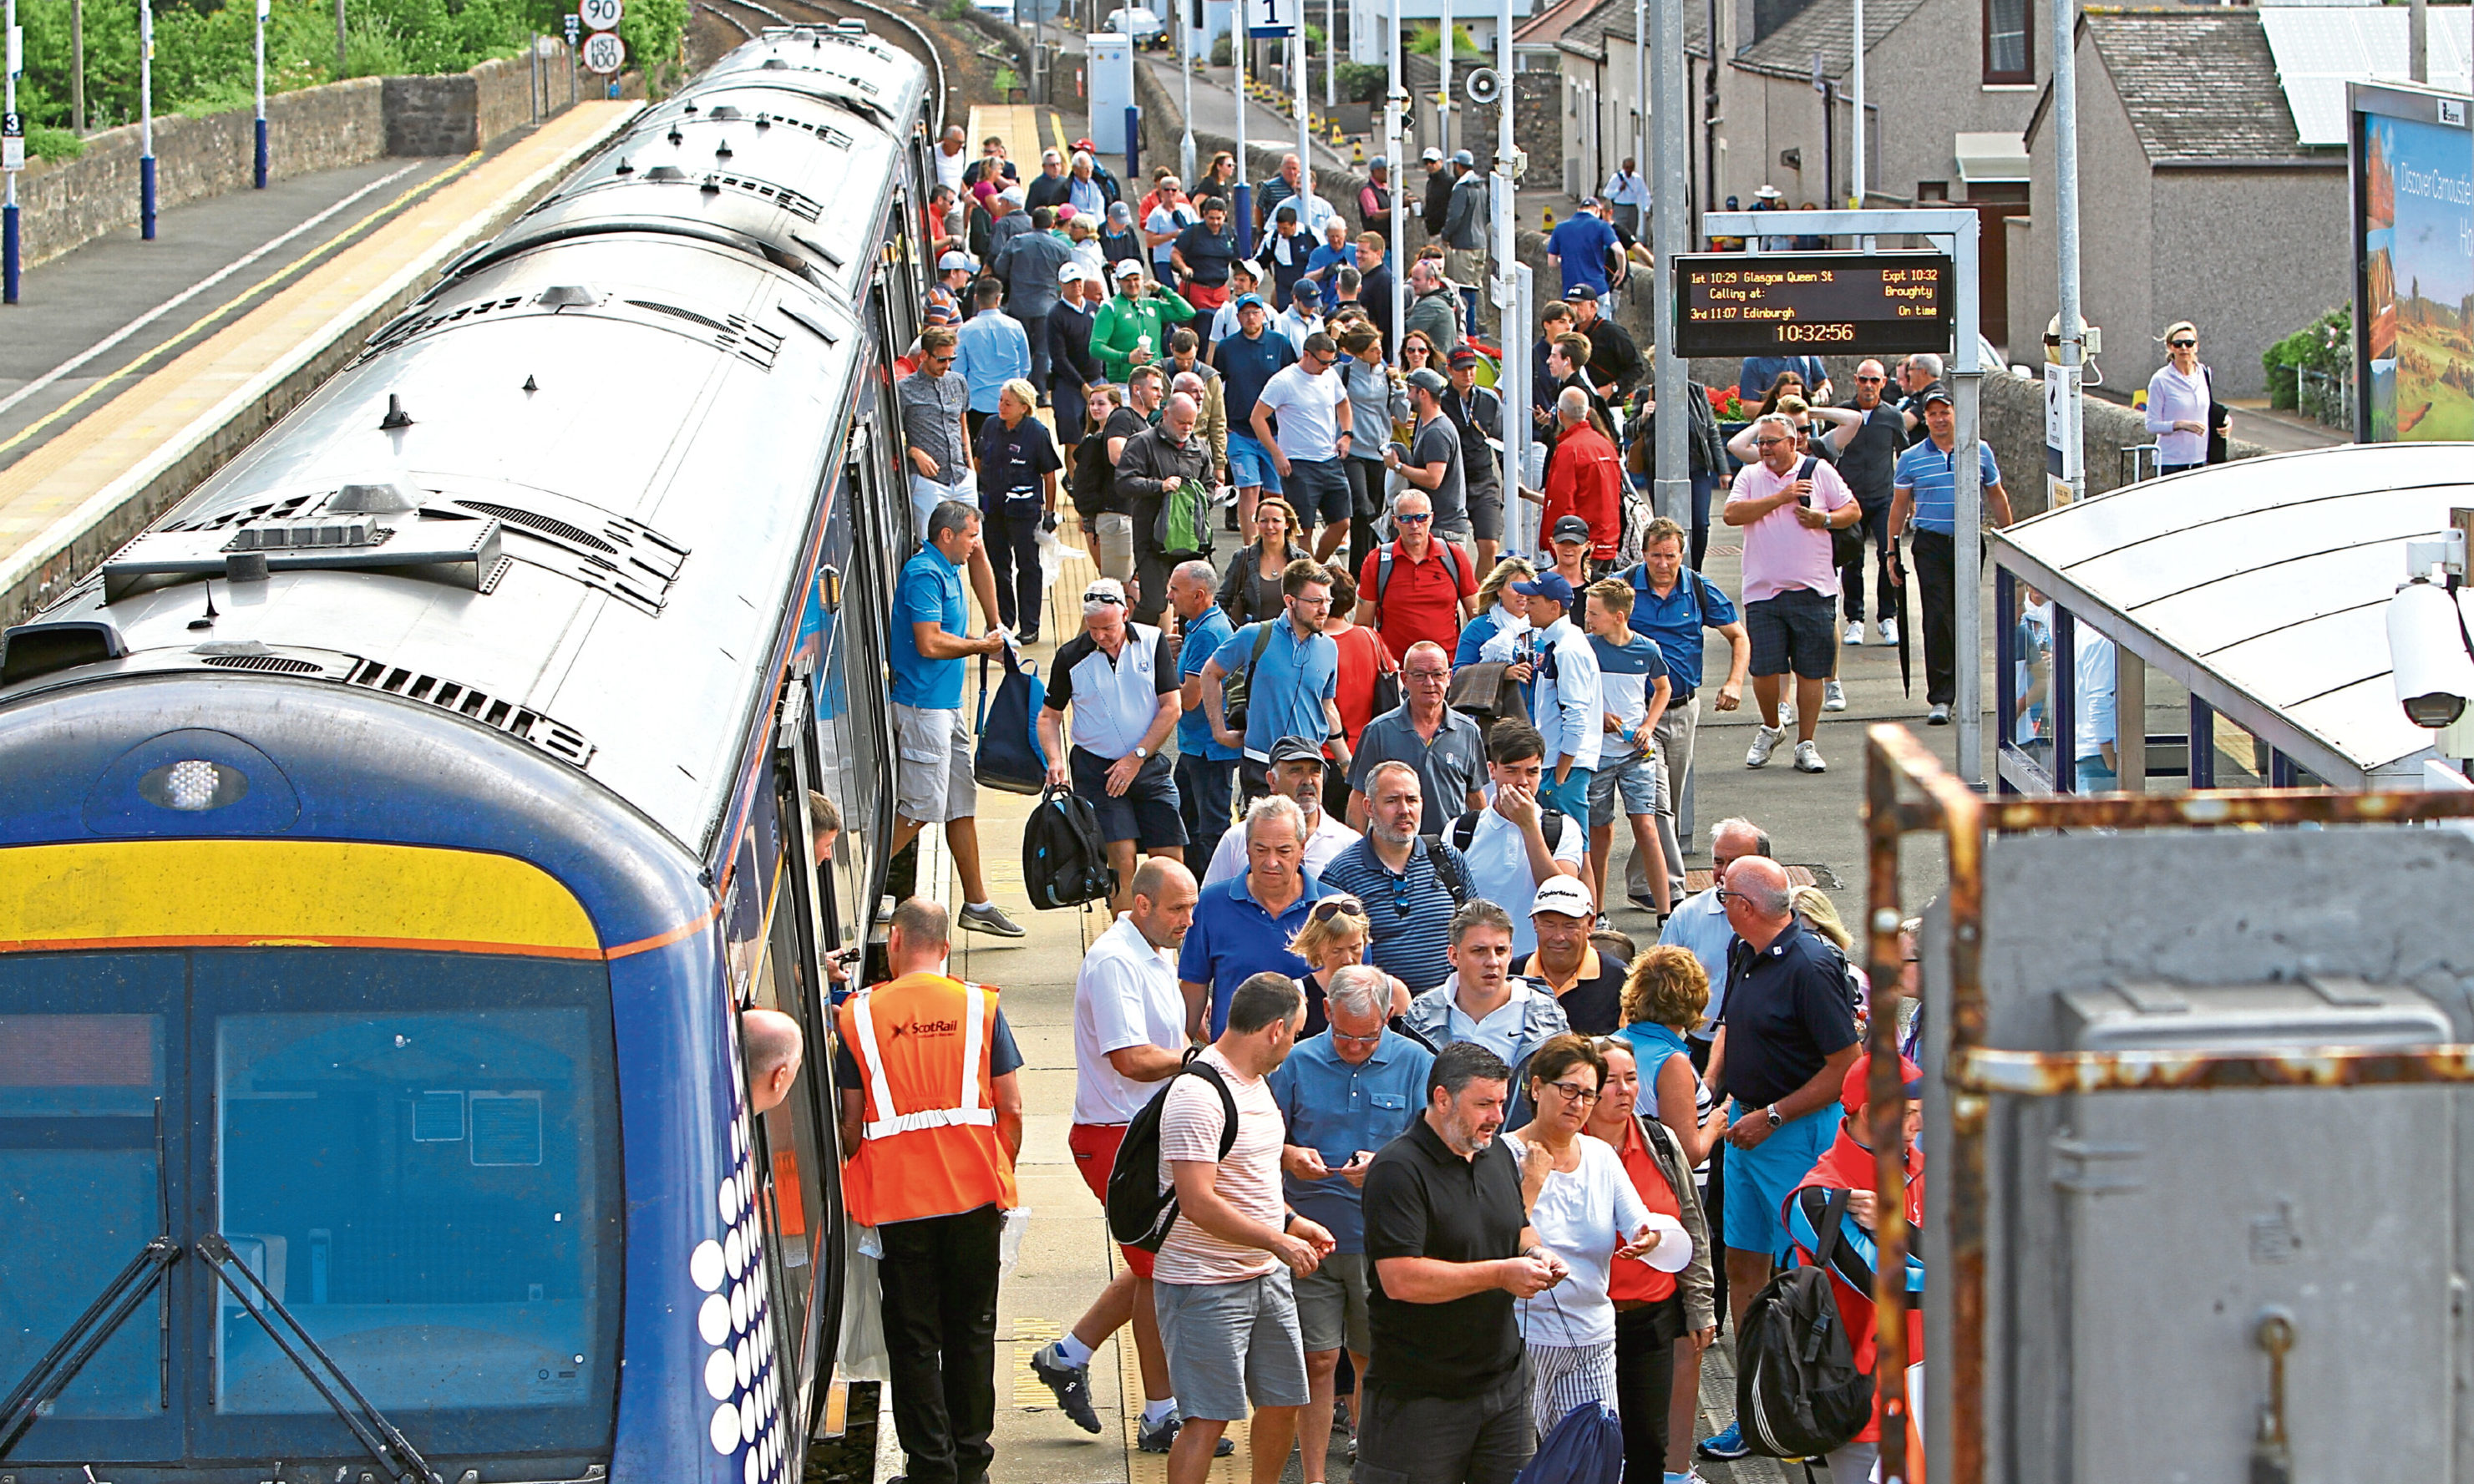 Passengers disembarking at Carnoustie Station for the final round of the Open Golf Championship in 2018.